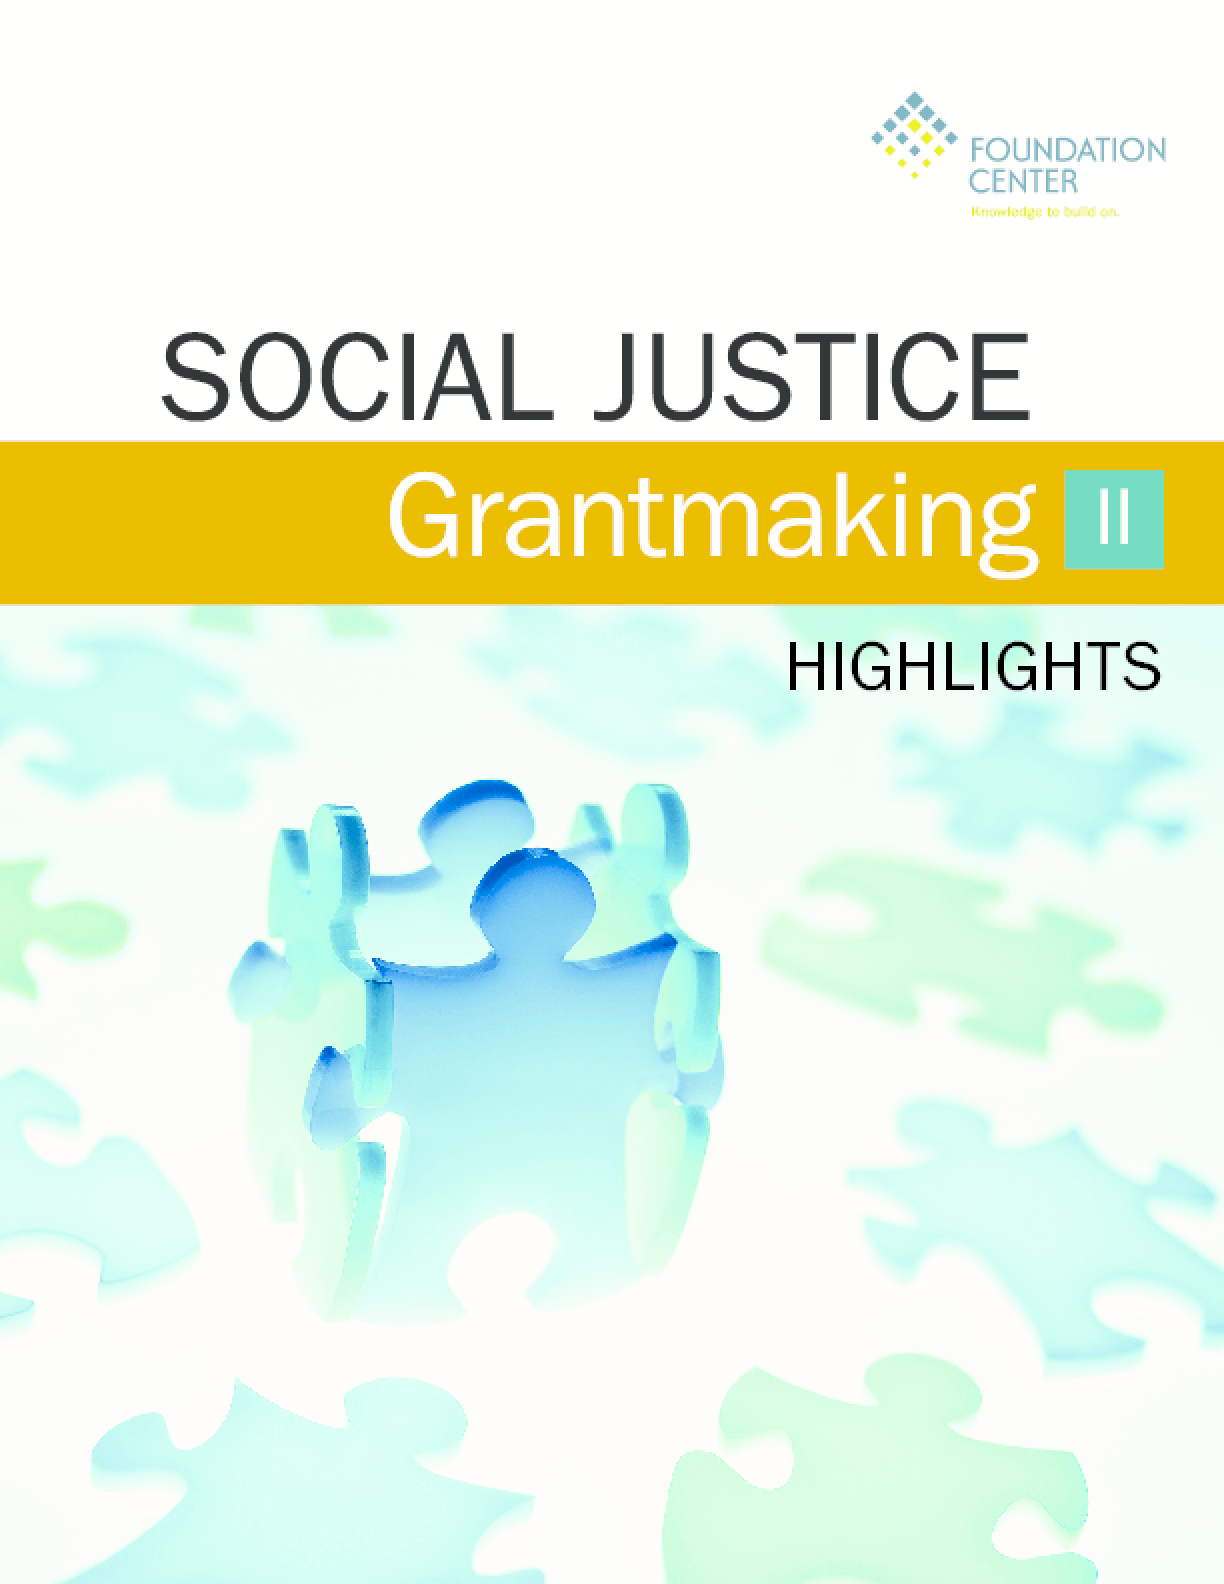 Social Justice Grantmaking II: Highlights